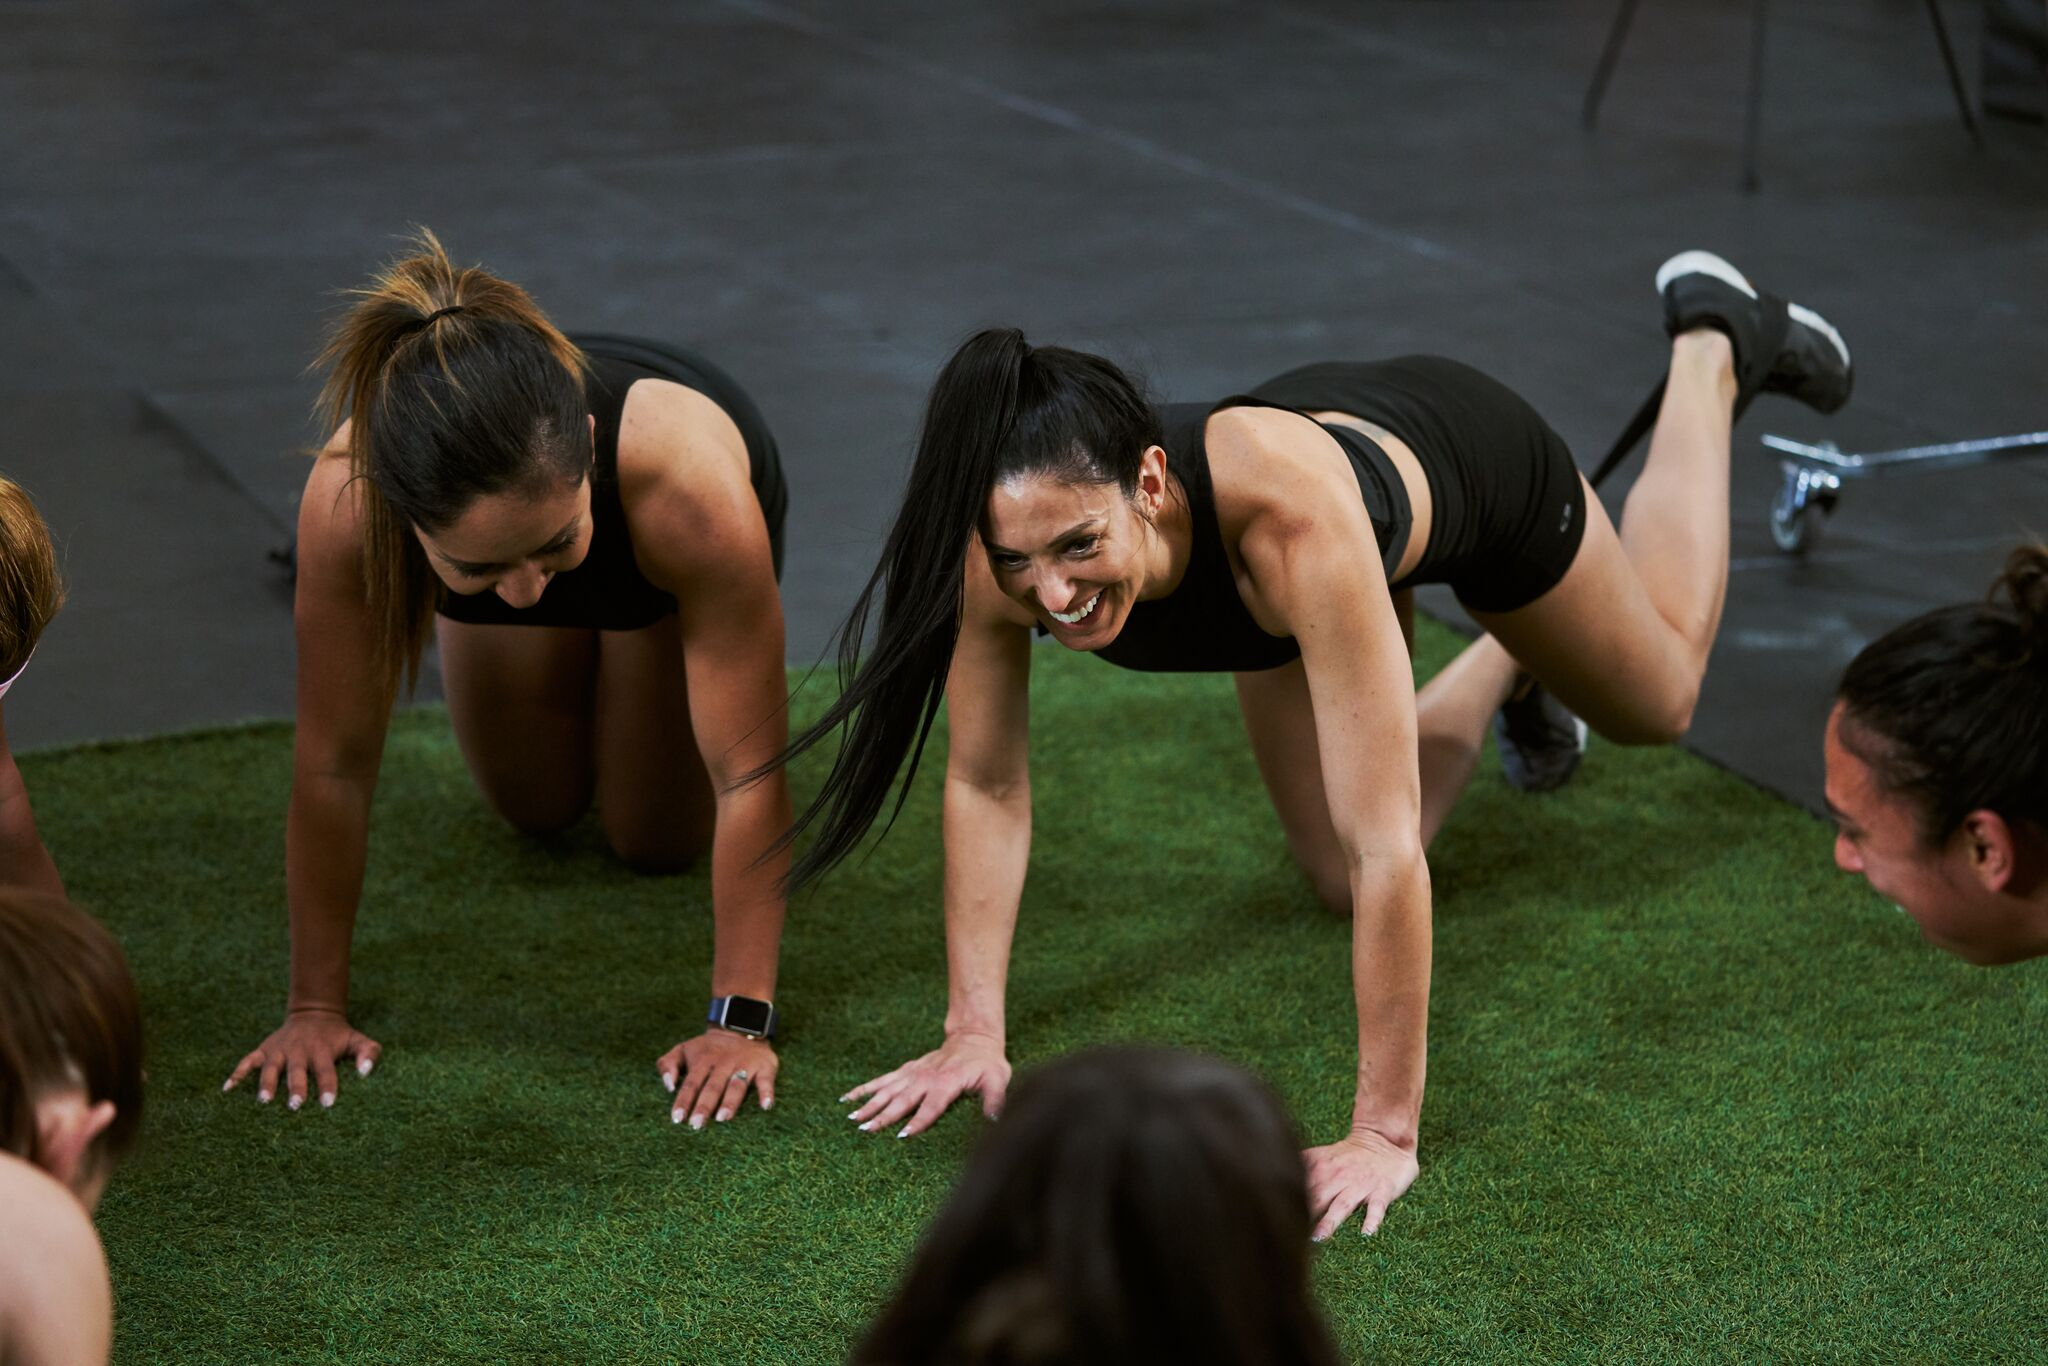 Join Our Group Fitness Classes - Our group classes are designed to help you build lean muscle and tone up while burning fat all at the same time. Every class is different so we're sure to have something that'll make coming to the gym fun!